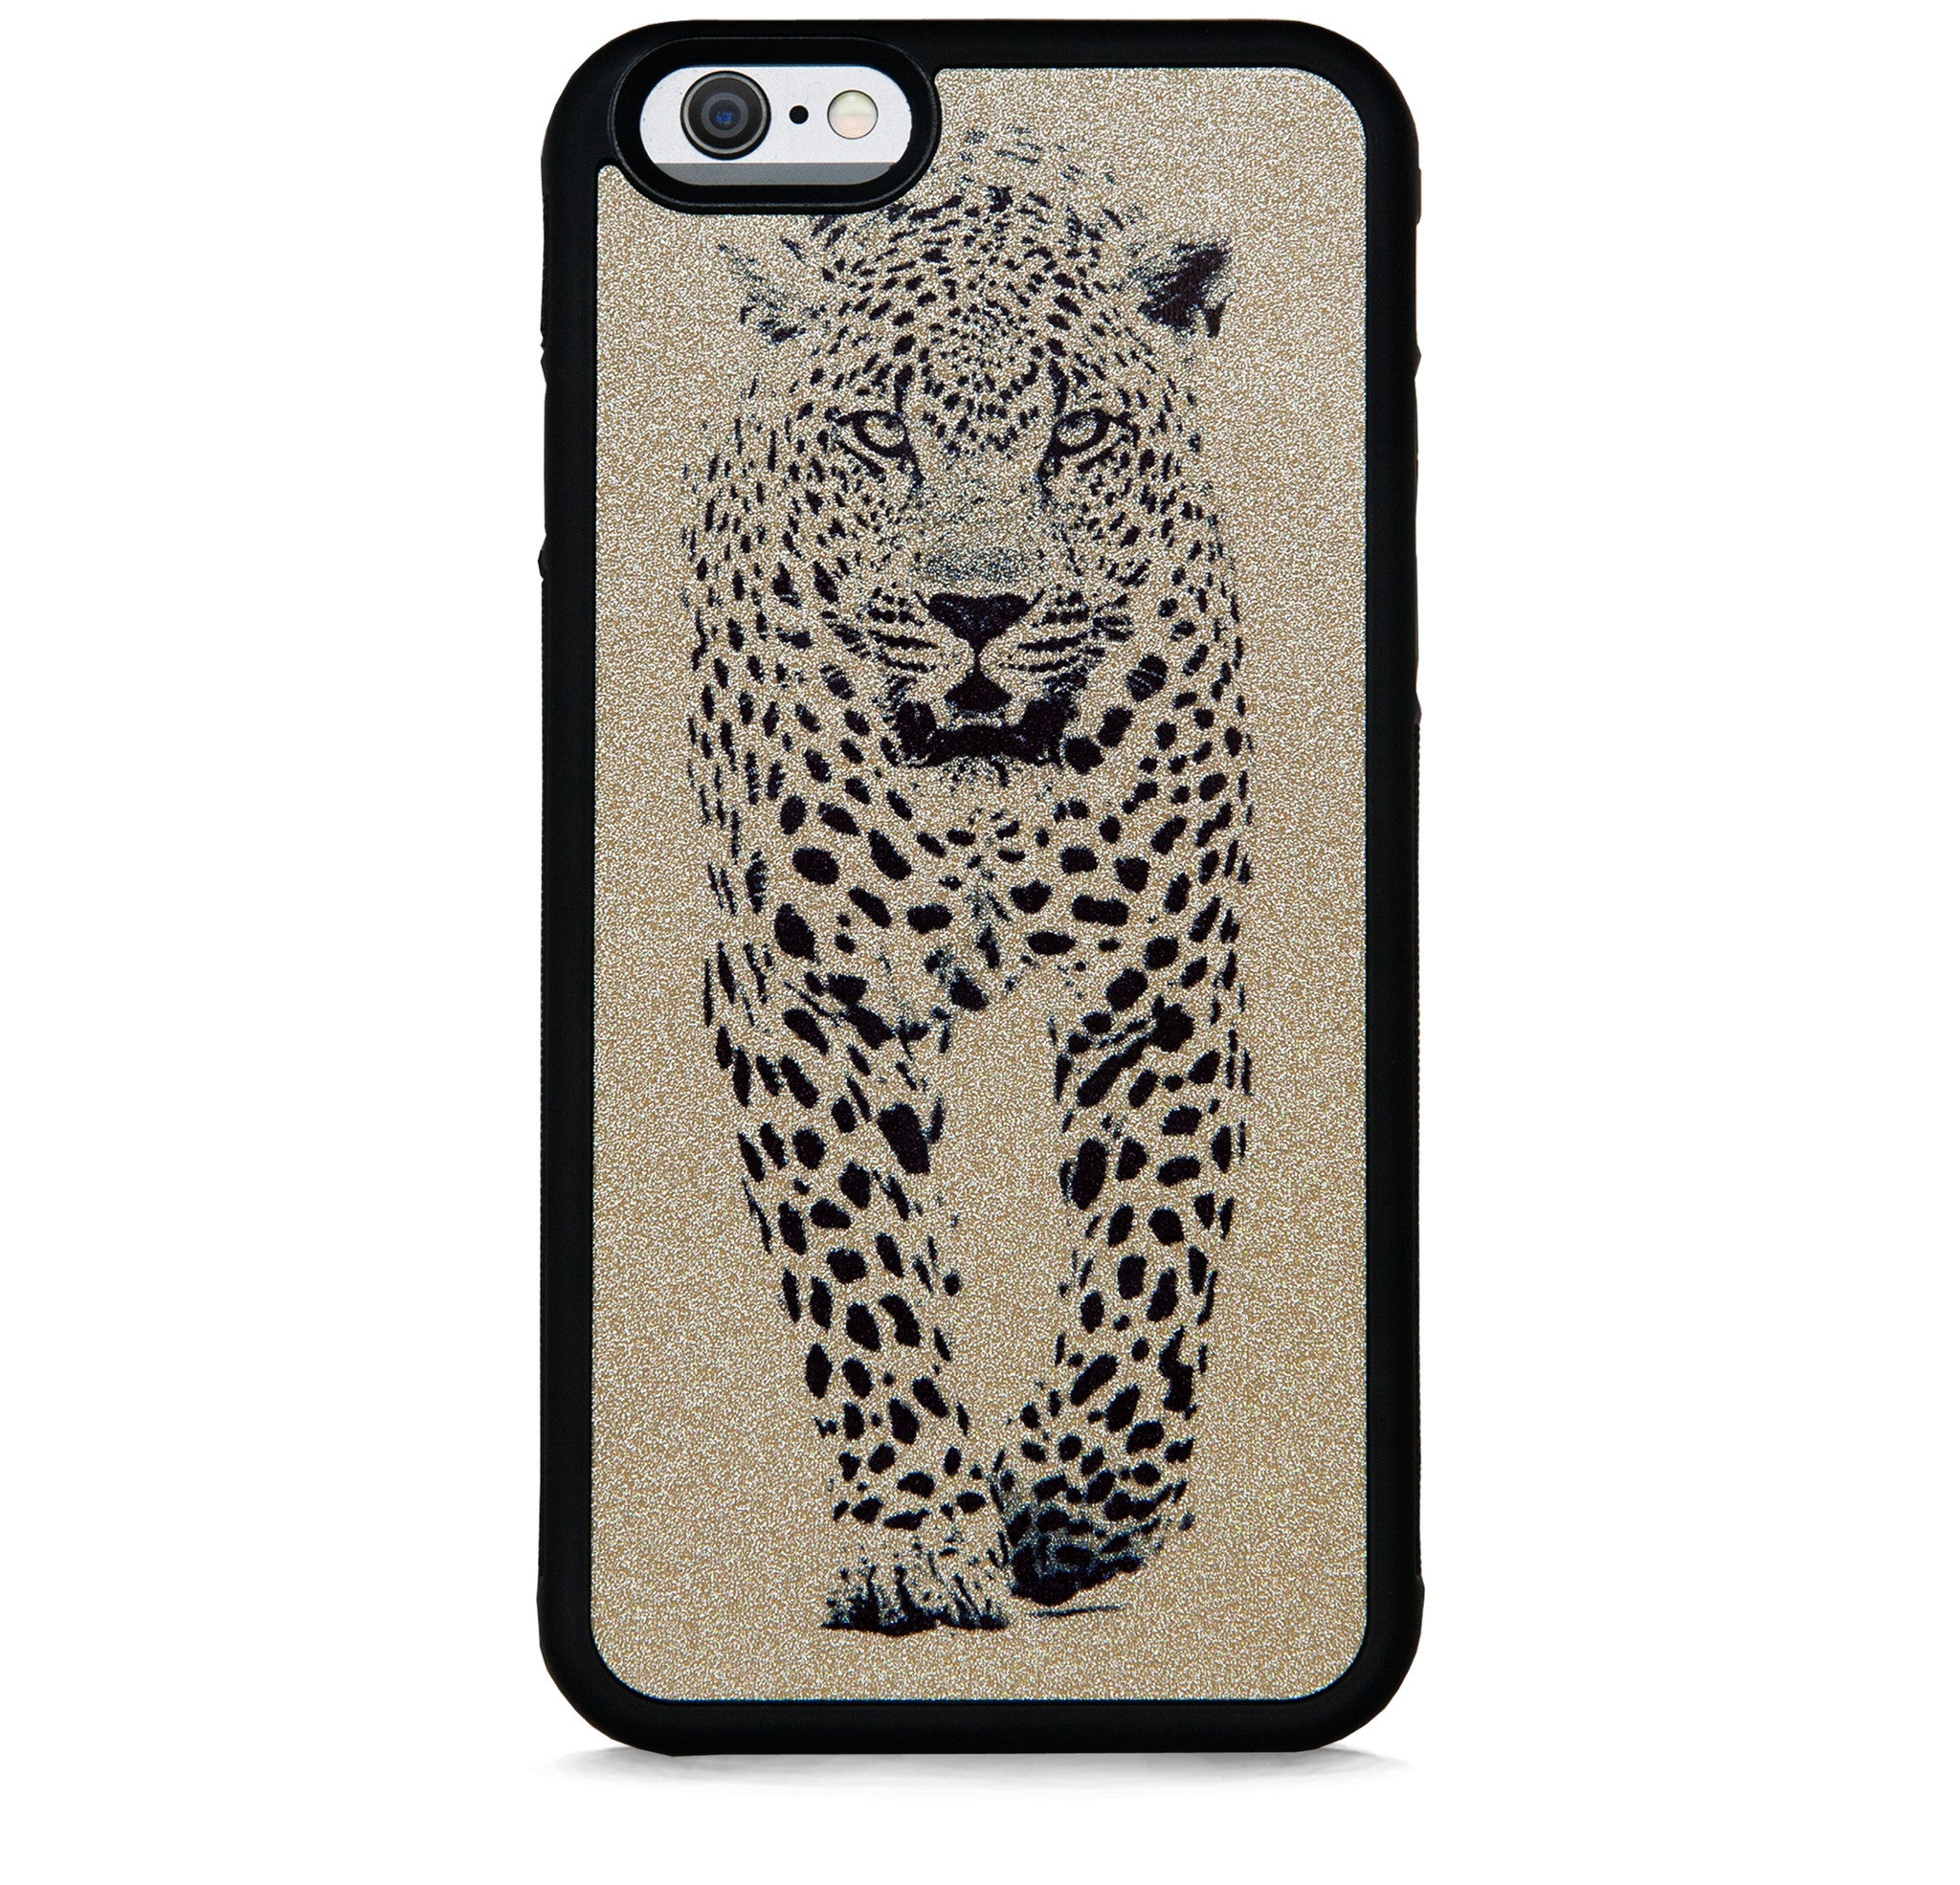 WILD CHEETAH BLACK ON GOLD FOR IPHONE 6/6S PLUS